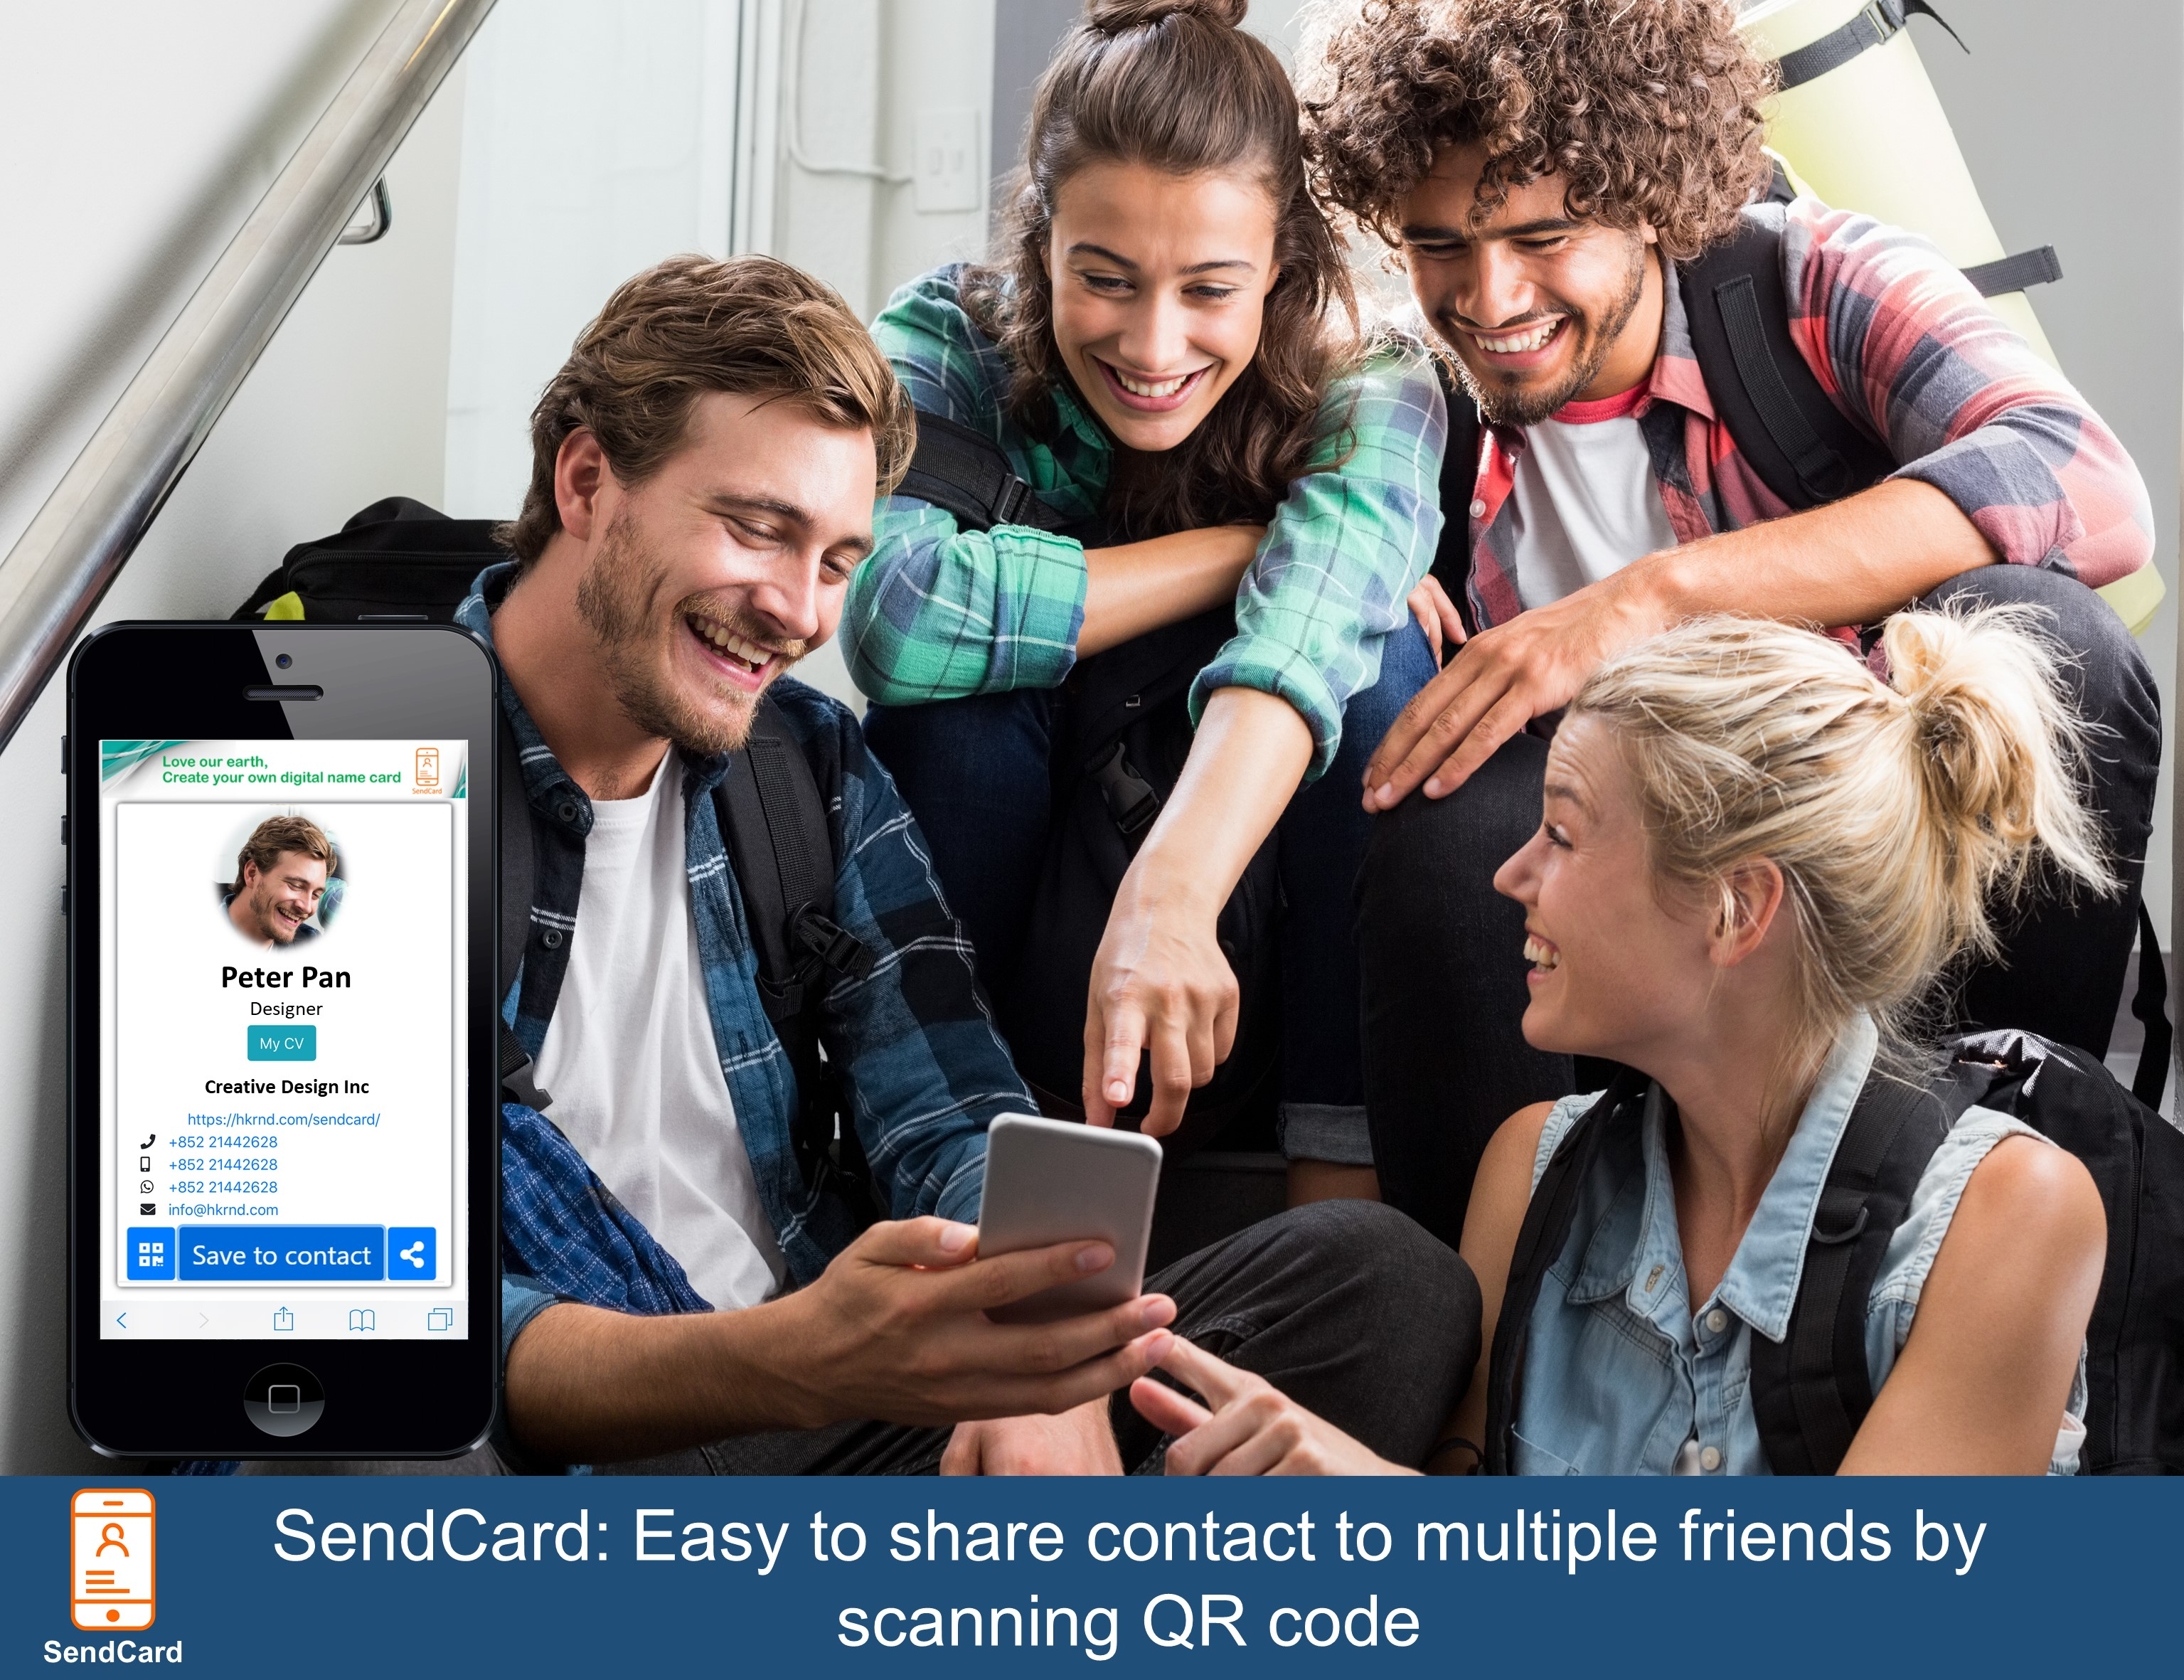 A group of people are amazed by SendCard